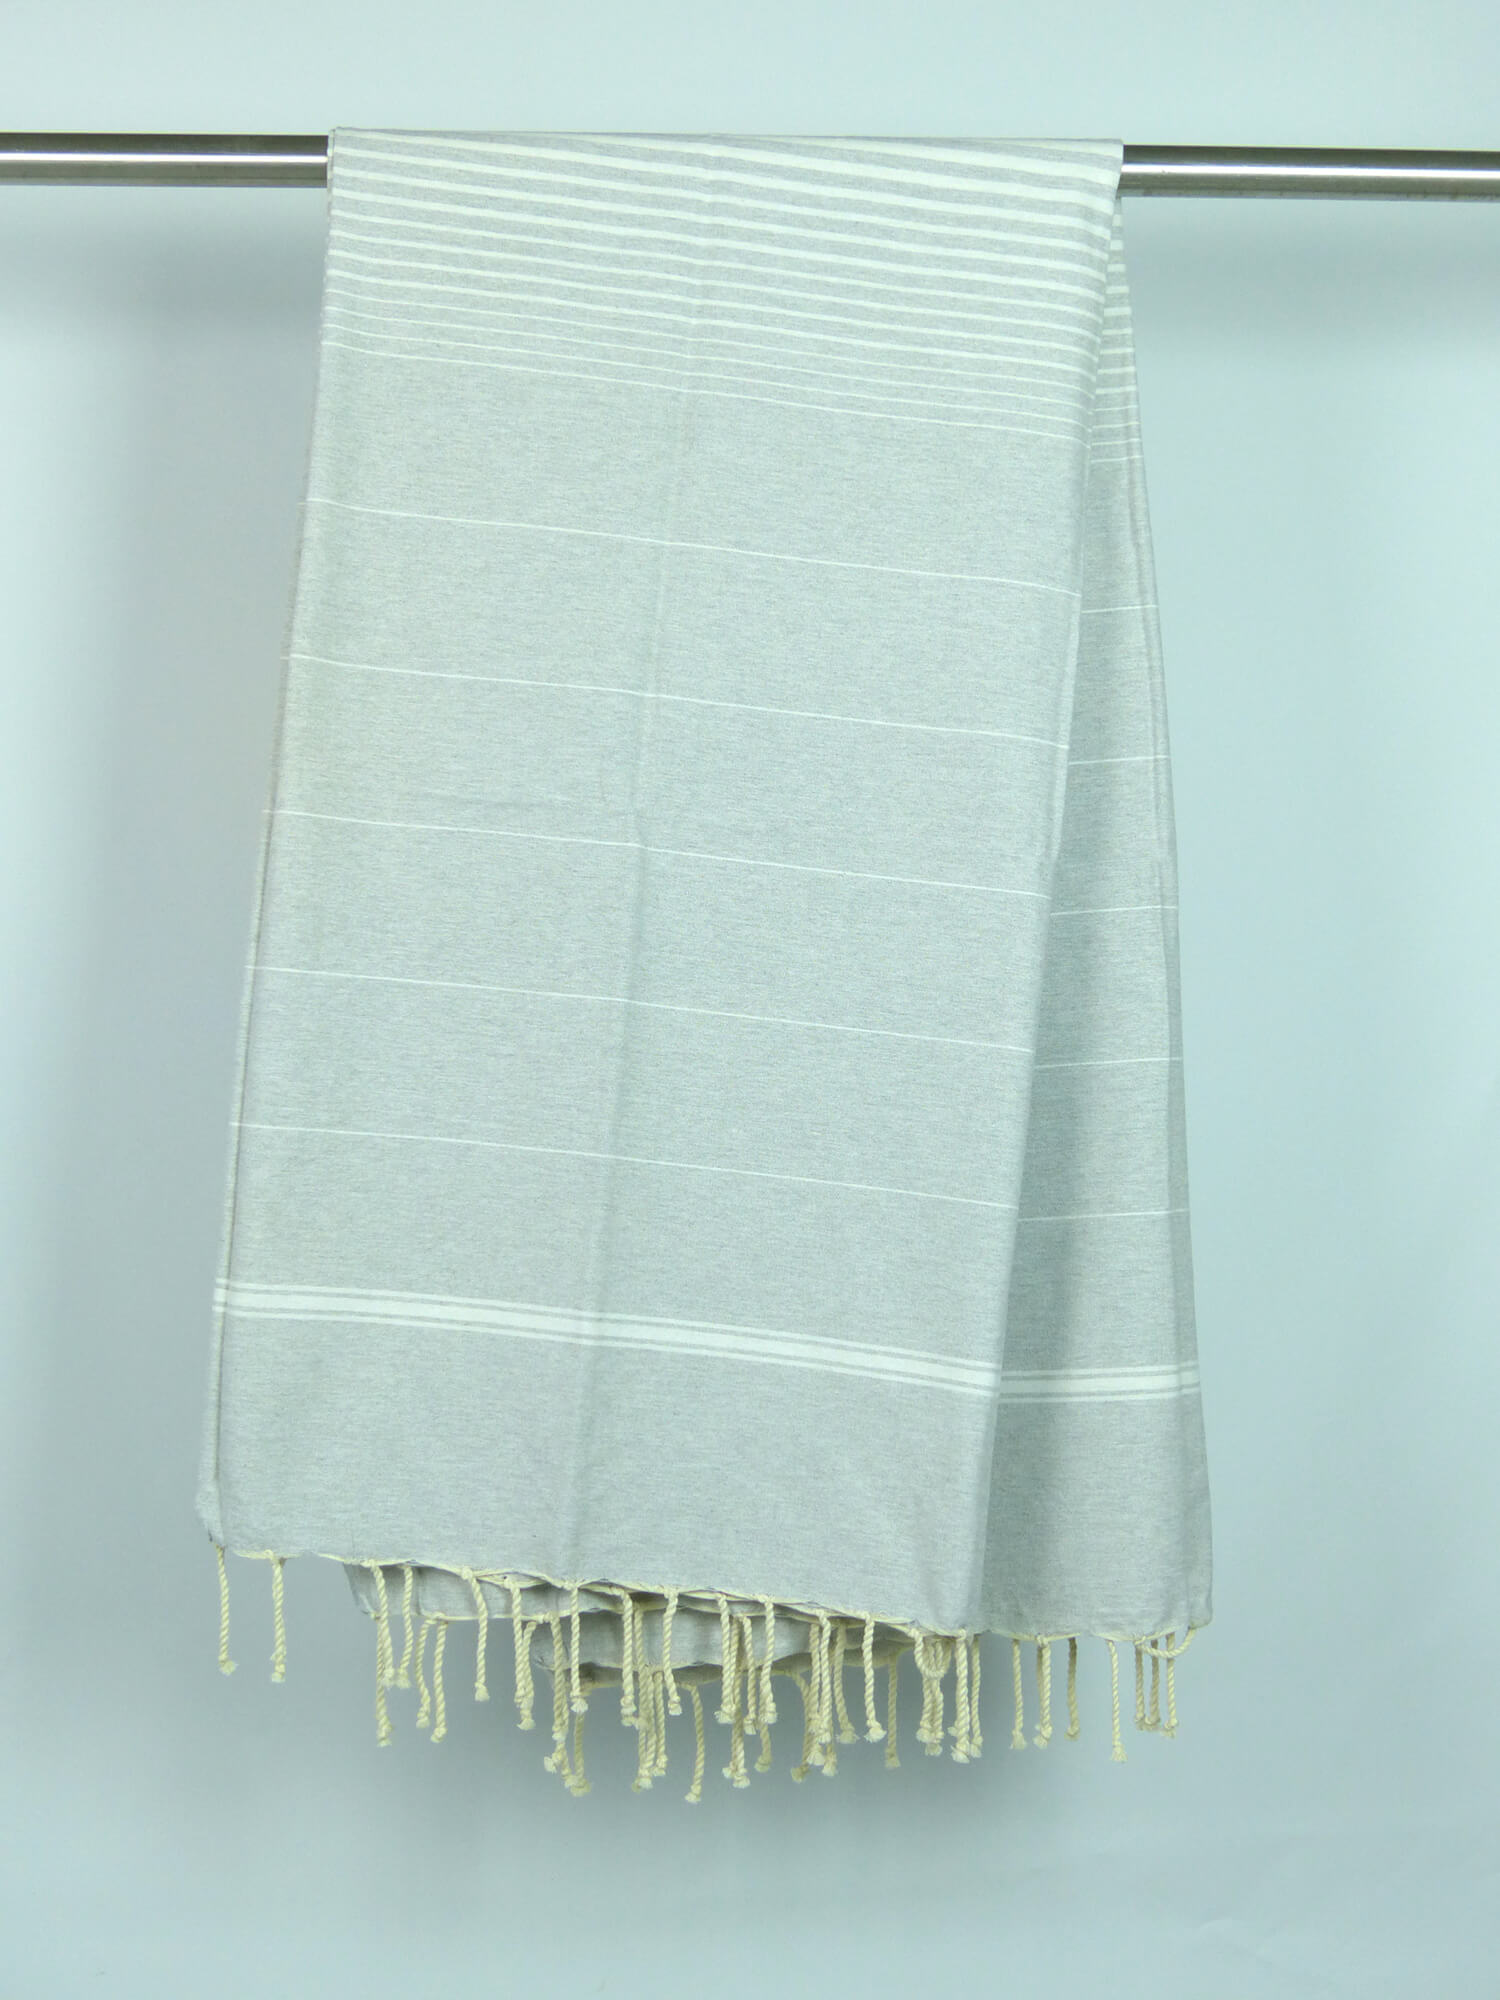 fouta tissage plat gris alu rayures blanches blanches xl 2m x 2m per 20058. Black Bedroom Furniture Sets. Home Design Ideas